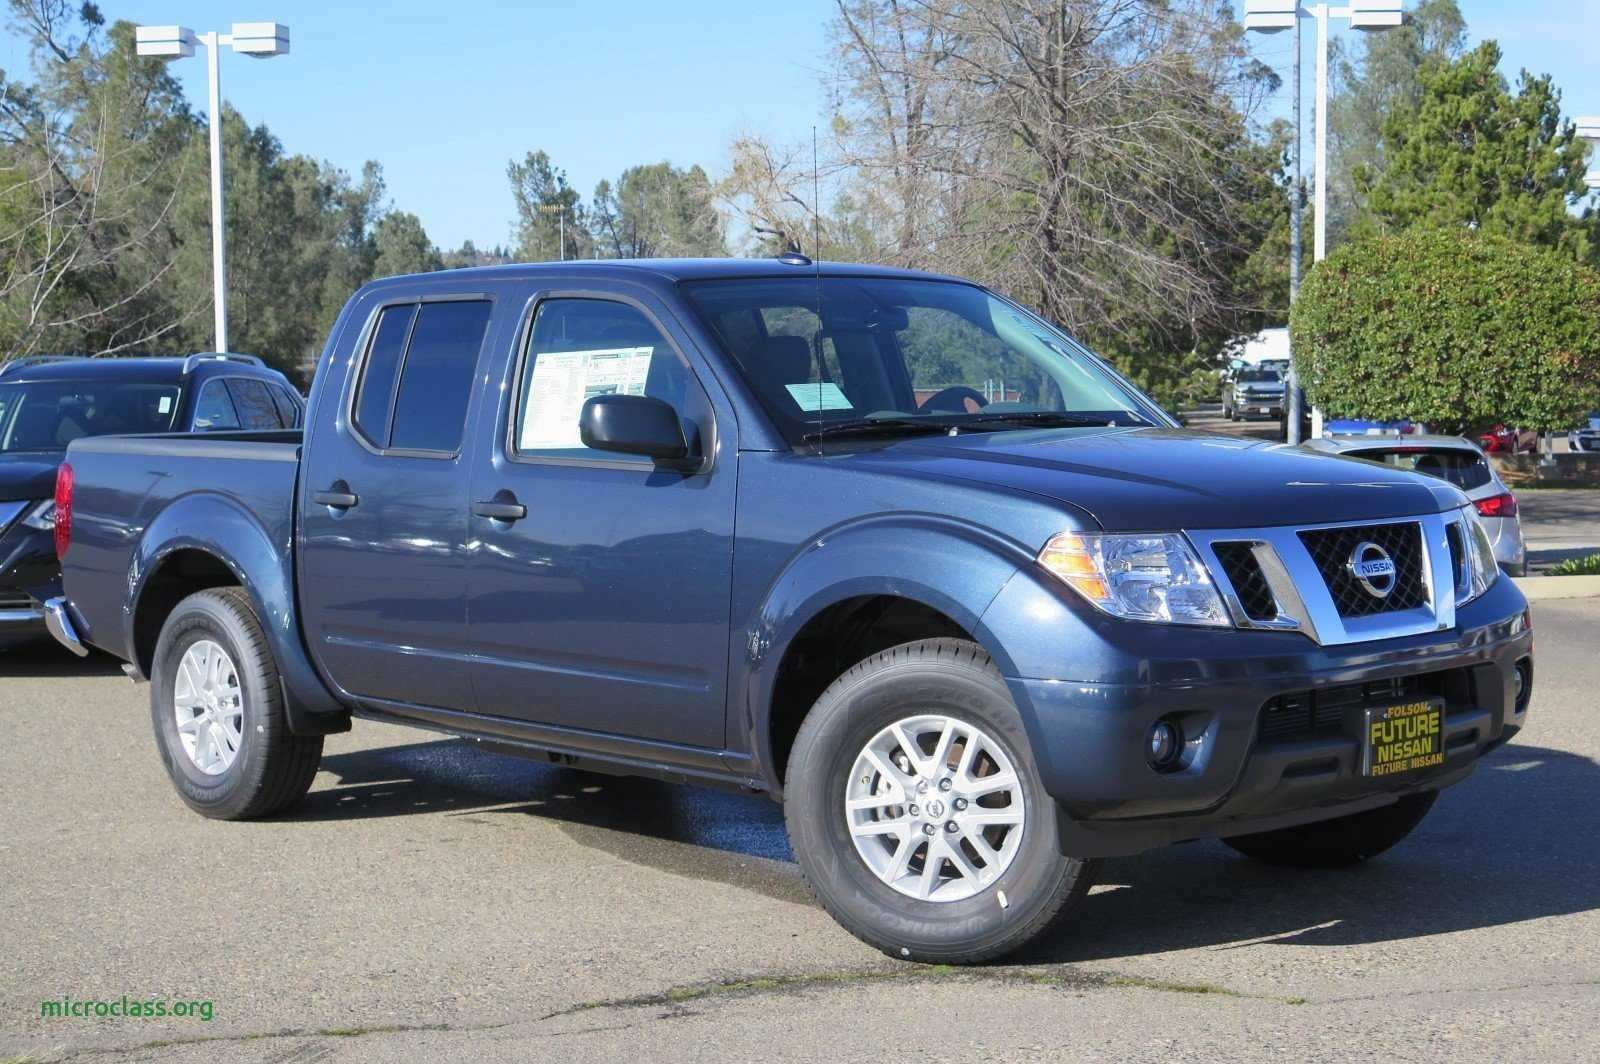 58 Gallery of New 2019 Nissan Frontier Pro 4X Release Date Price And Review Research New for New 2019 Nissan Frontier Pro 4X Release Date Price And Review